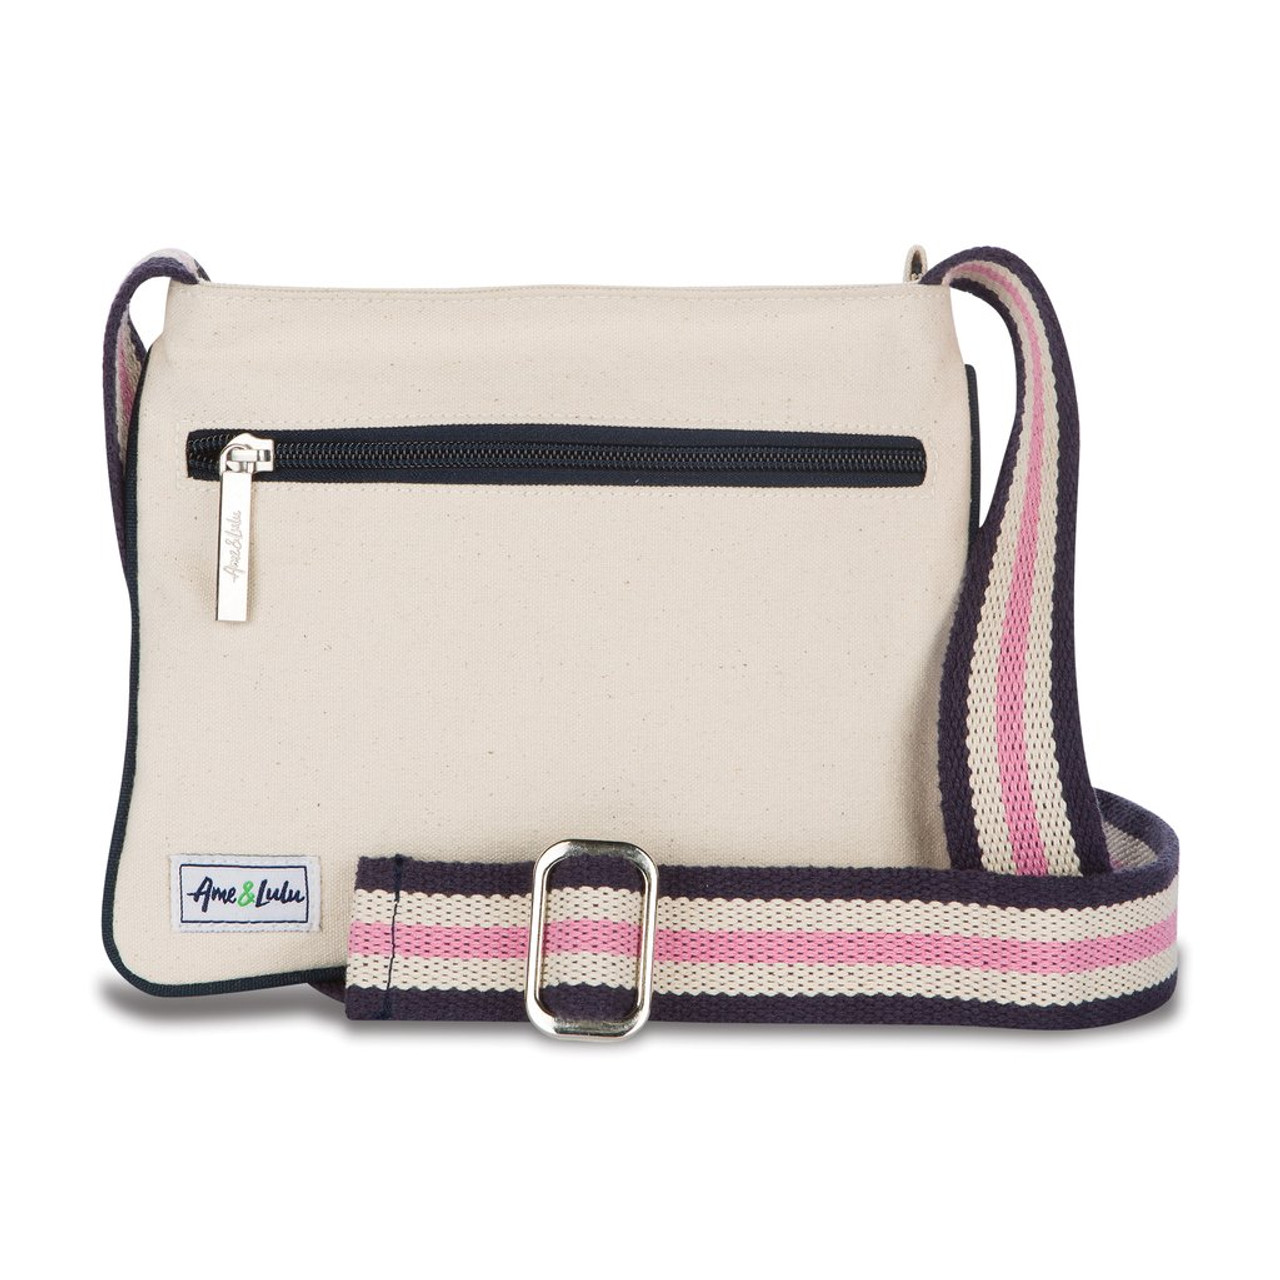 d2e0391714 Ame & Lulu Cabana 88 Dockside Crossbody (4 colors) | Golf4Her